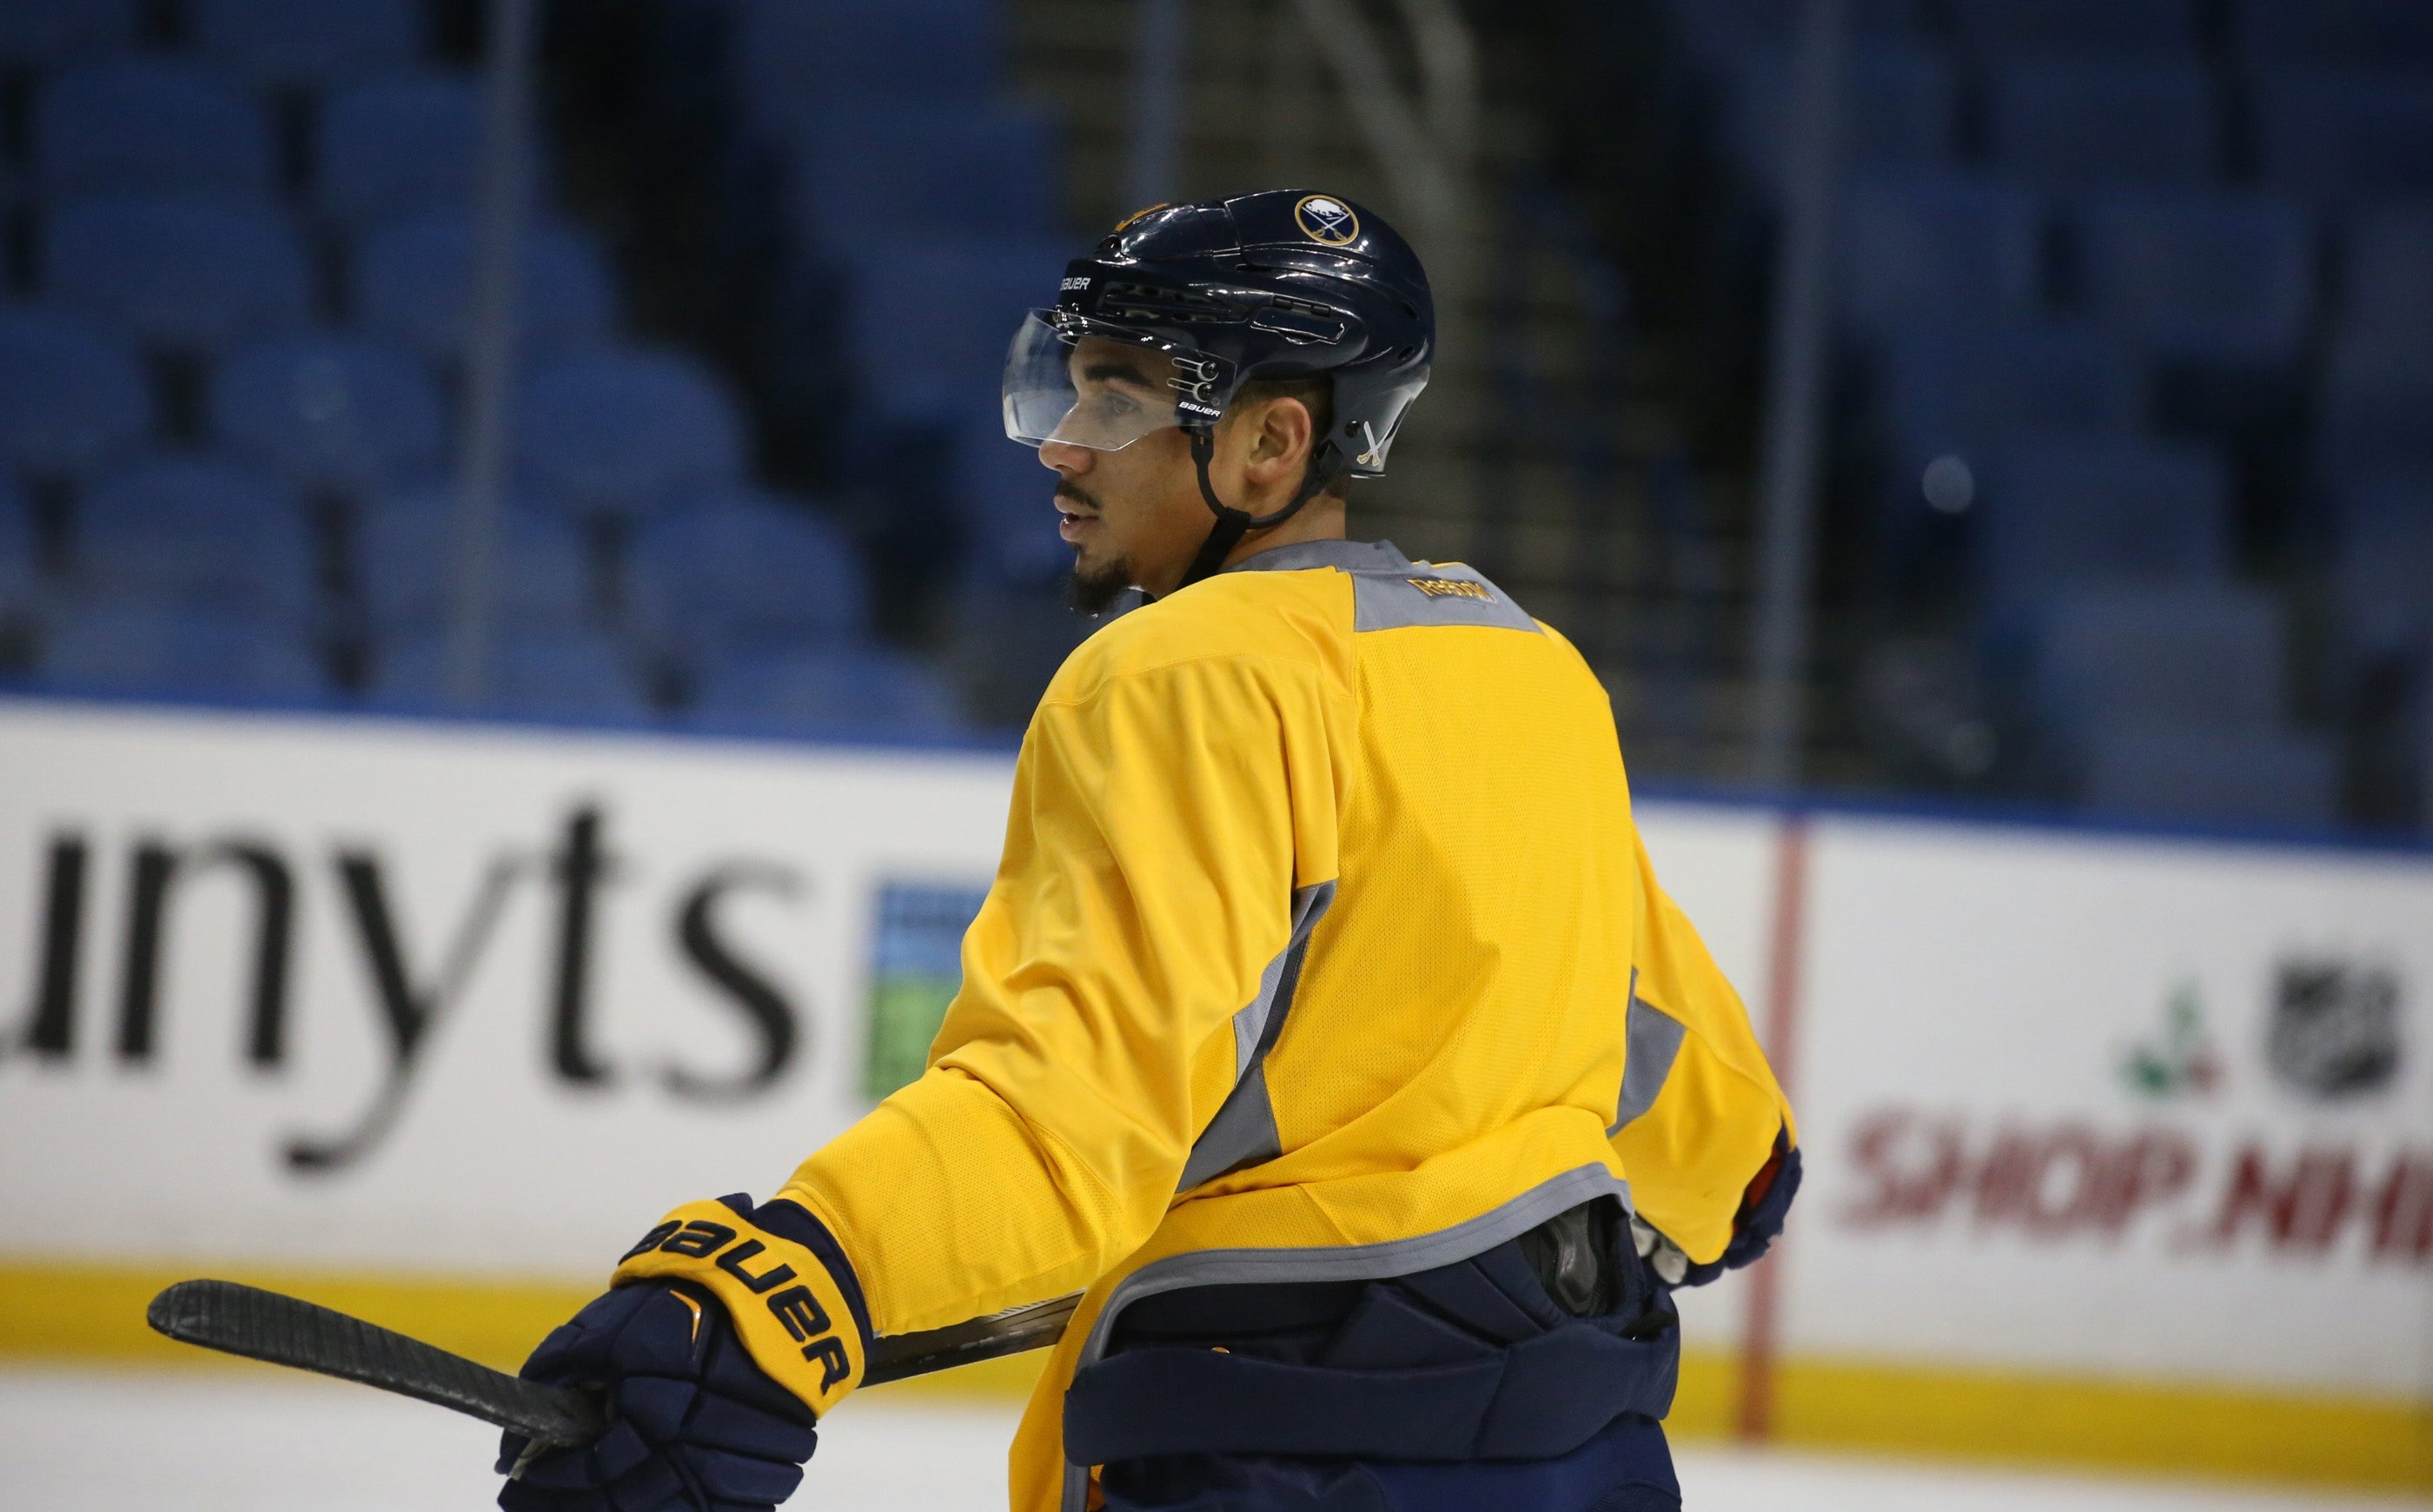 Evander Kane skates during Monday morning's Sabres practice at First Niagara Center. He will play tonight against the Washington Capitals.